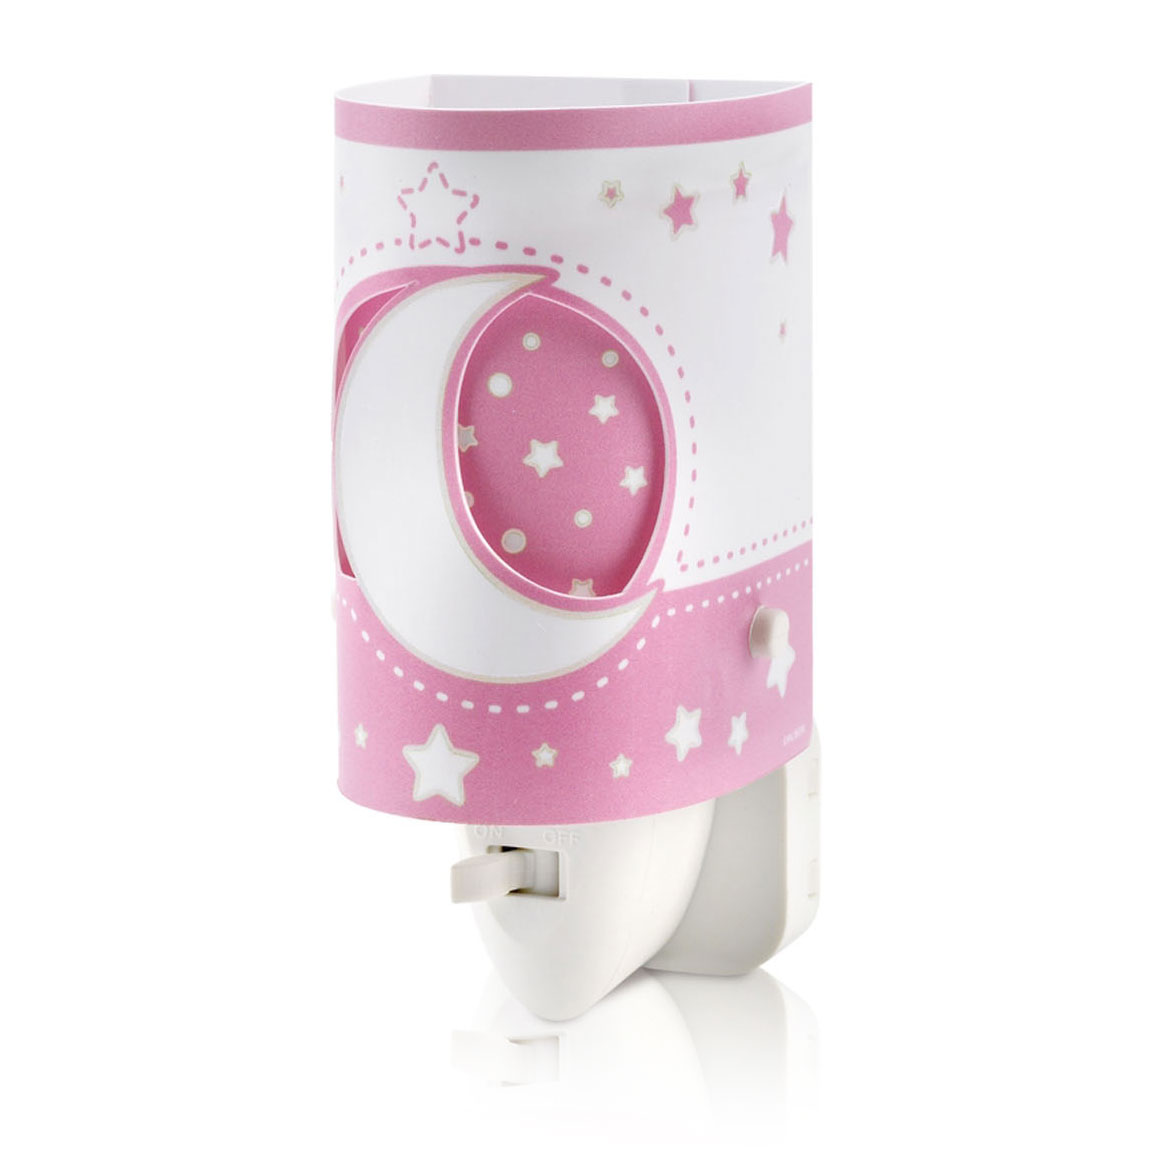 Dalber Nachtlamp LED Maanlicht Glow in the Dark Roze